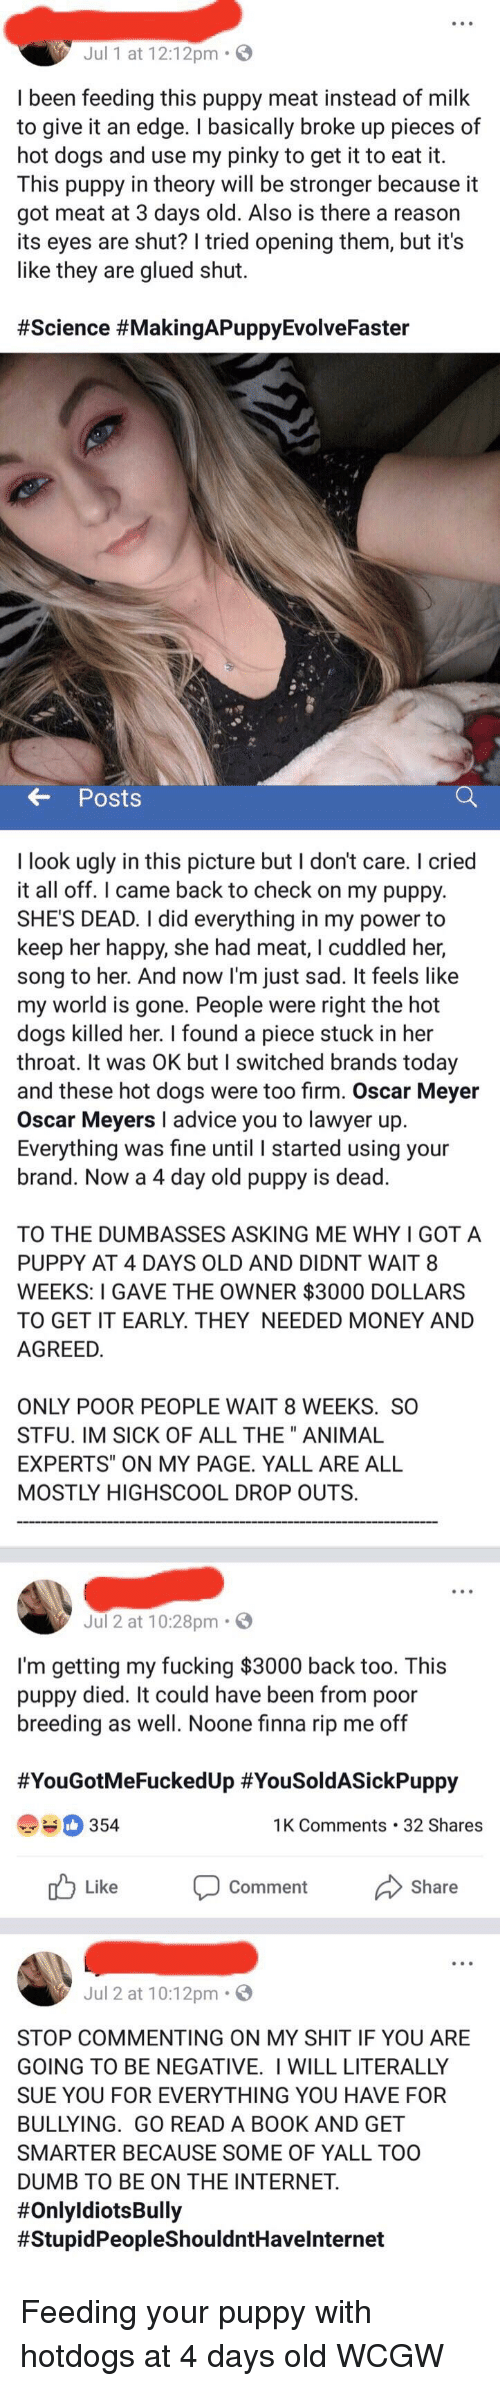 "Oscar Meyer: Jul 1 at 12:12pm .  I been feeding this puppy meat instead of milk  o give it an edge. I basically broke up pieces of  ot dogs and use my pinky to get it to eat it  his puppy in theory will be stronger because it  got meat at 3 days old. Also is there a reason  its eyes are shut? I tried opening them, but it's  like they are glued shut  # Science #MakingAPuppyEvolveFaster  Posts  I look ugly in this picture but I don't care. I cried  it all off. I came back to check on my puppy  SHES DEAD. I did everything in my power to  keep her happy, she had meat, I cuddled her,  song to her. And now I'm just sad. It feels like  my world is gone. People were right the hot  dogs killed her. I found a piece stuck in her  throat. It was OK but I switched brands today  and these hot dogs were too firm. Oscar Meyer  Oscar Meyers I advice you to lawyer up  Everything was fine until I started using your  brand. Now a 4 day old puppy is dead  TO THE DUMBASSES ASKING ME WHY I GOT A  PUPPY AT 4 DAYS OLD AND DIDNT WAIT 8  WEEKS: I GAVE THE OWNER $3000 DOLLARS  TO GET IT EARLY. THEY NEEDED MONEY AN  AGREED  ONLY POOR PEOPLE WAIT 8 WEEKS. so  FU. IM SICK OF ALL THE"" ANIMAL  EXPERTS"" ON MY PAGE. YALL ARE ALL  OSTLY HIGHSCOOL DROp OUTS  Jul 2 at 10:28pm.  I'm getting my fucking $3000 back too. This  puppy died. It could have been from poor  breeding as well. Noone finna rip me off  #YouGotMeFuckedUp #YouSoldASickPuppy  354  1K Comments 32 Shares  Jul 2 at 10:12pm.  STOP COMMENTING ON MY SHIT IF YOU ARE  ING TO BE NEGATIVE. I WILL LITERALLY  UE YOU FOR EVERYTHING YOU HAVE FOR  BULLYING. GO READ A BOOK AND GET  SMARTER BECAUSE SOME OF YALL TOO  DUMB TO BE ON THE INTERNET  #OnlyidiotsBully  # StupidPeopleShouldntHave!nternet"